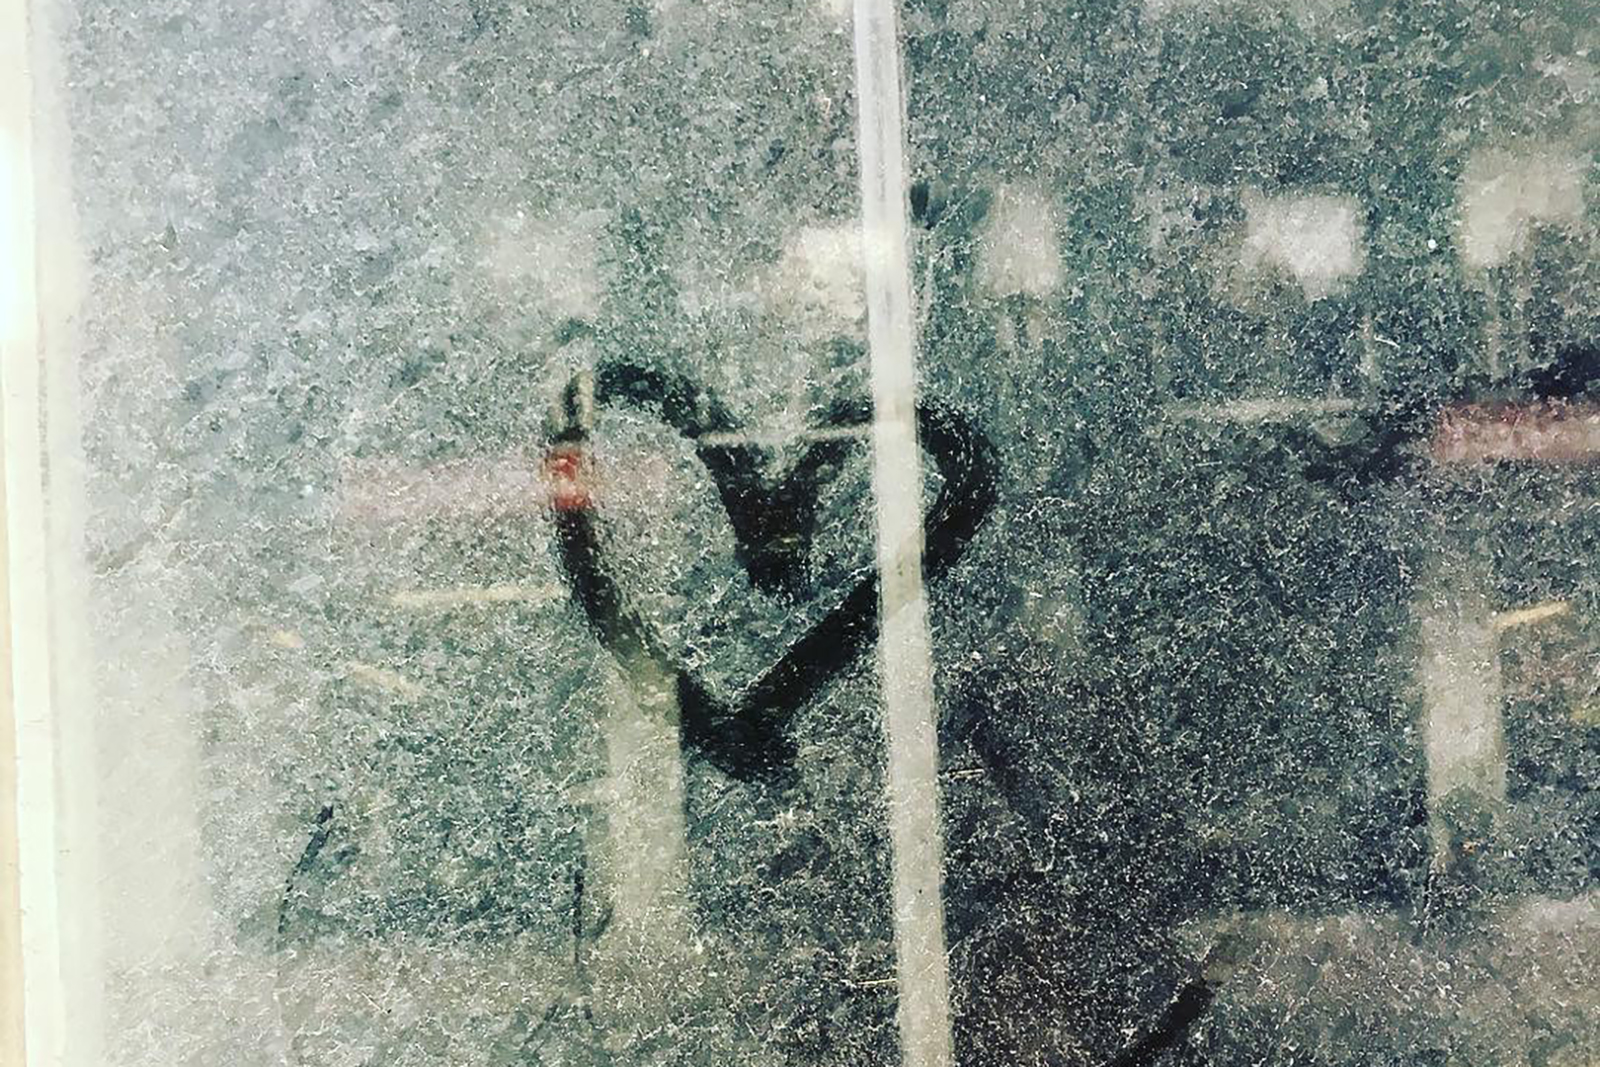 A dirty, dusty window with a heart